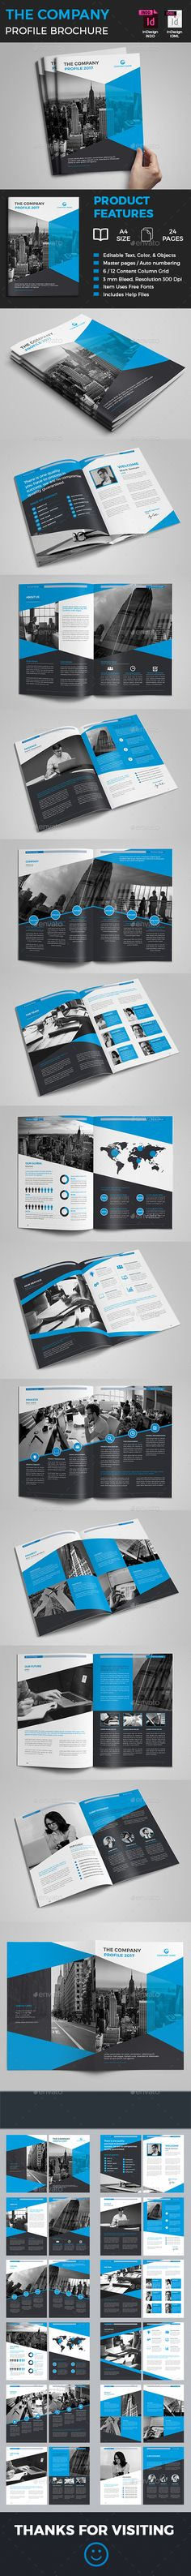 The Company Profile — InDesign Template #a4 #proposal brochure • Download ➝ https://graphicriver.net/item/the-company-profile/18085053?ref=pxcr